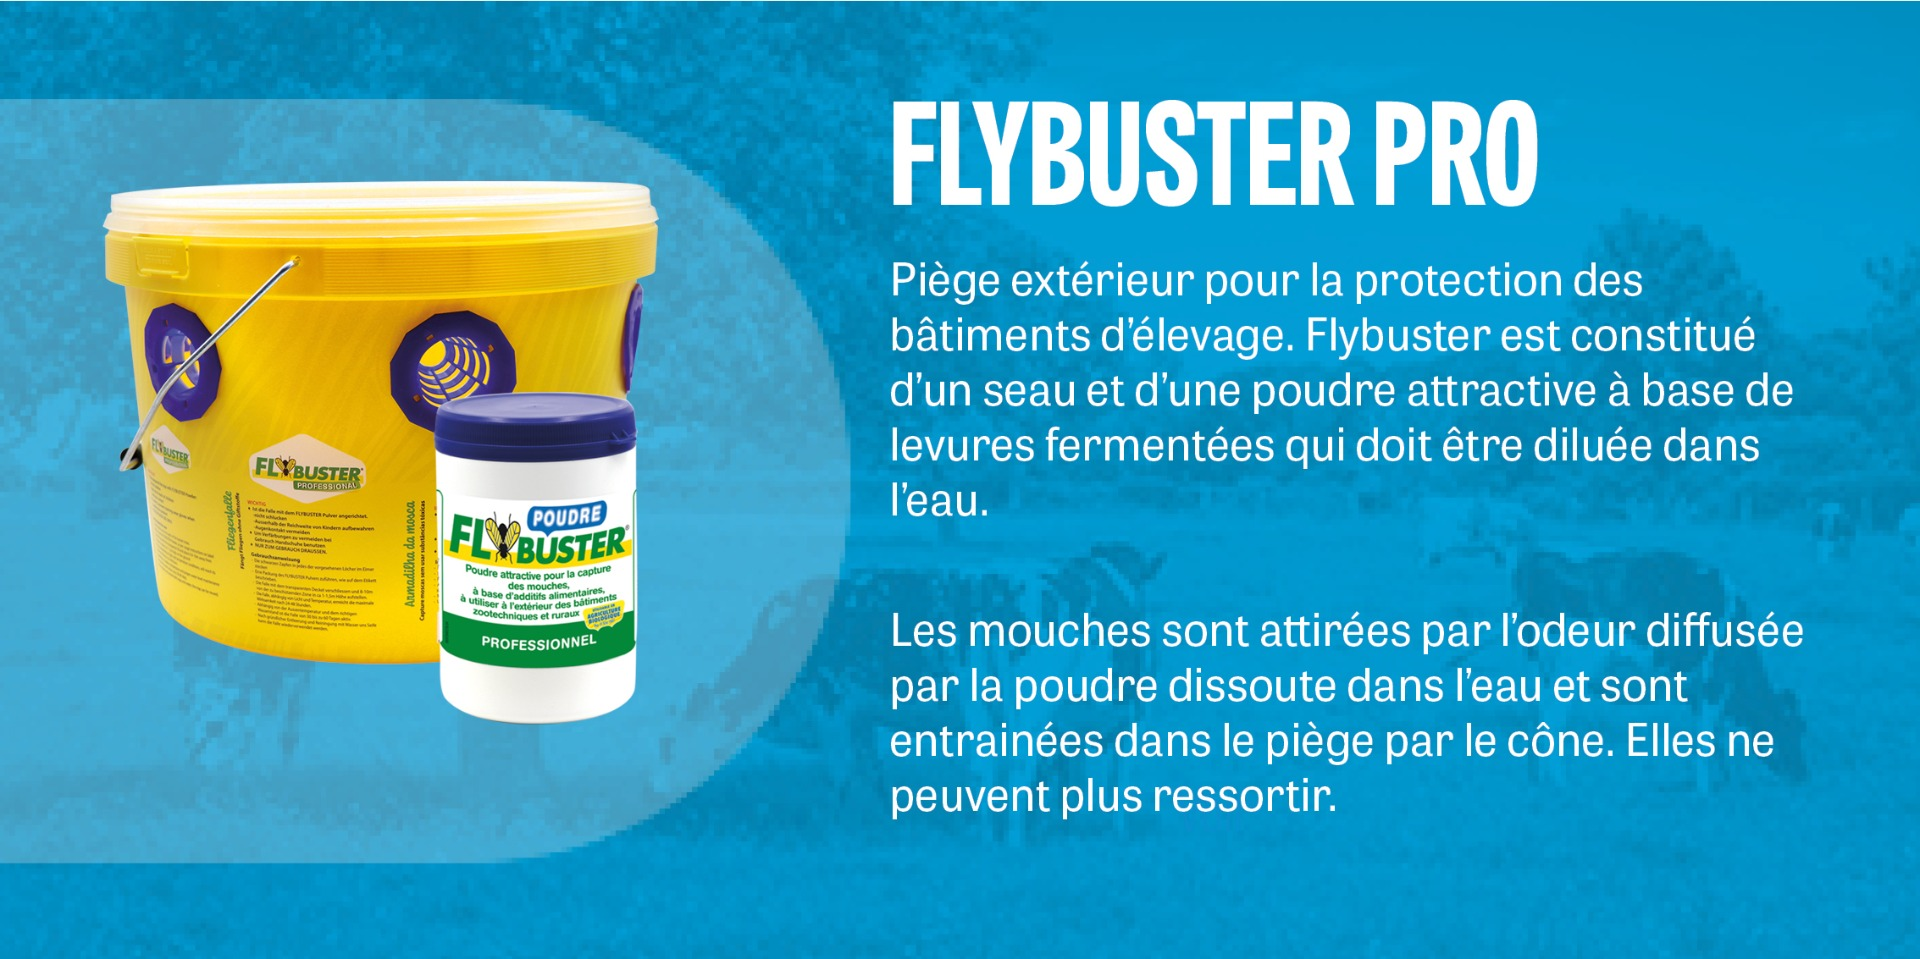 FLYBUSTER PRO